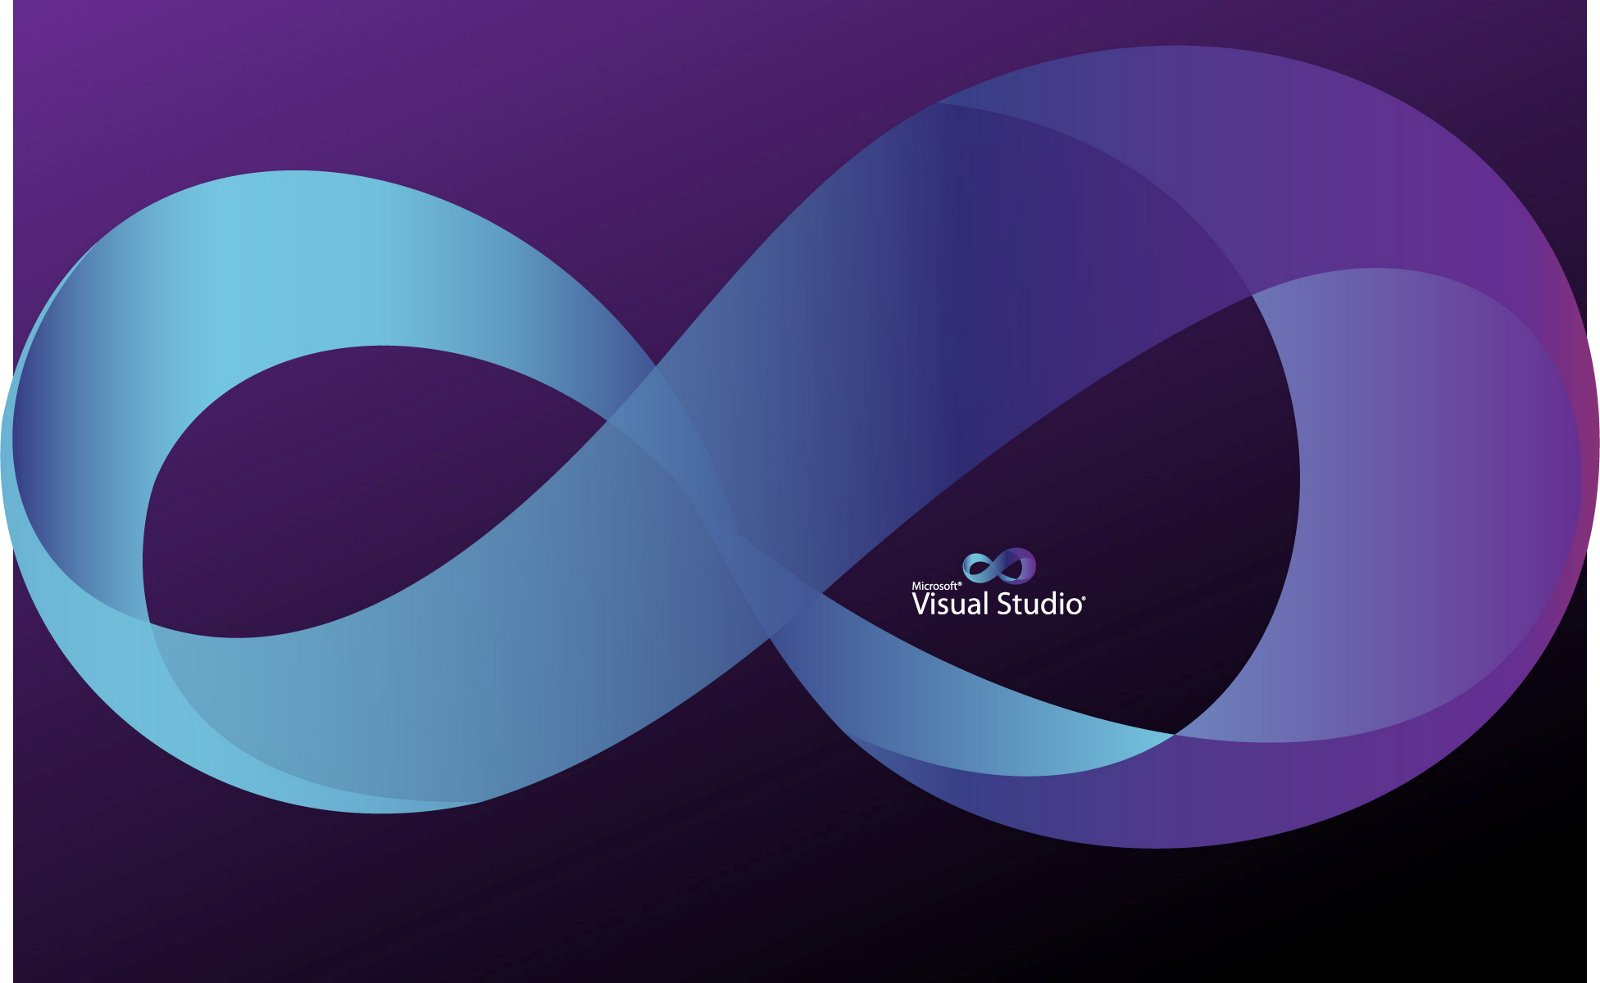 Microsoft Visual Studio Ultimate 2012 Free Download Full